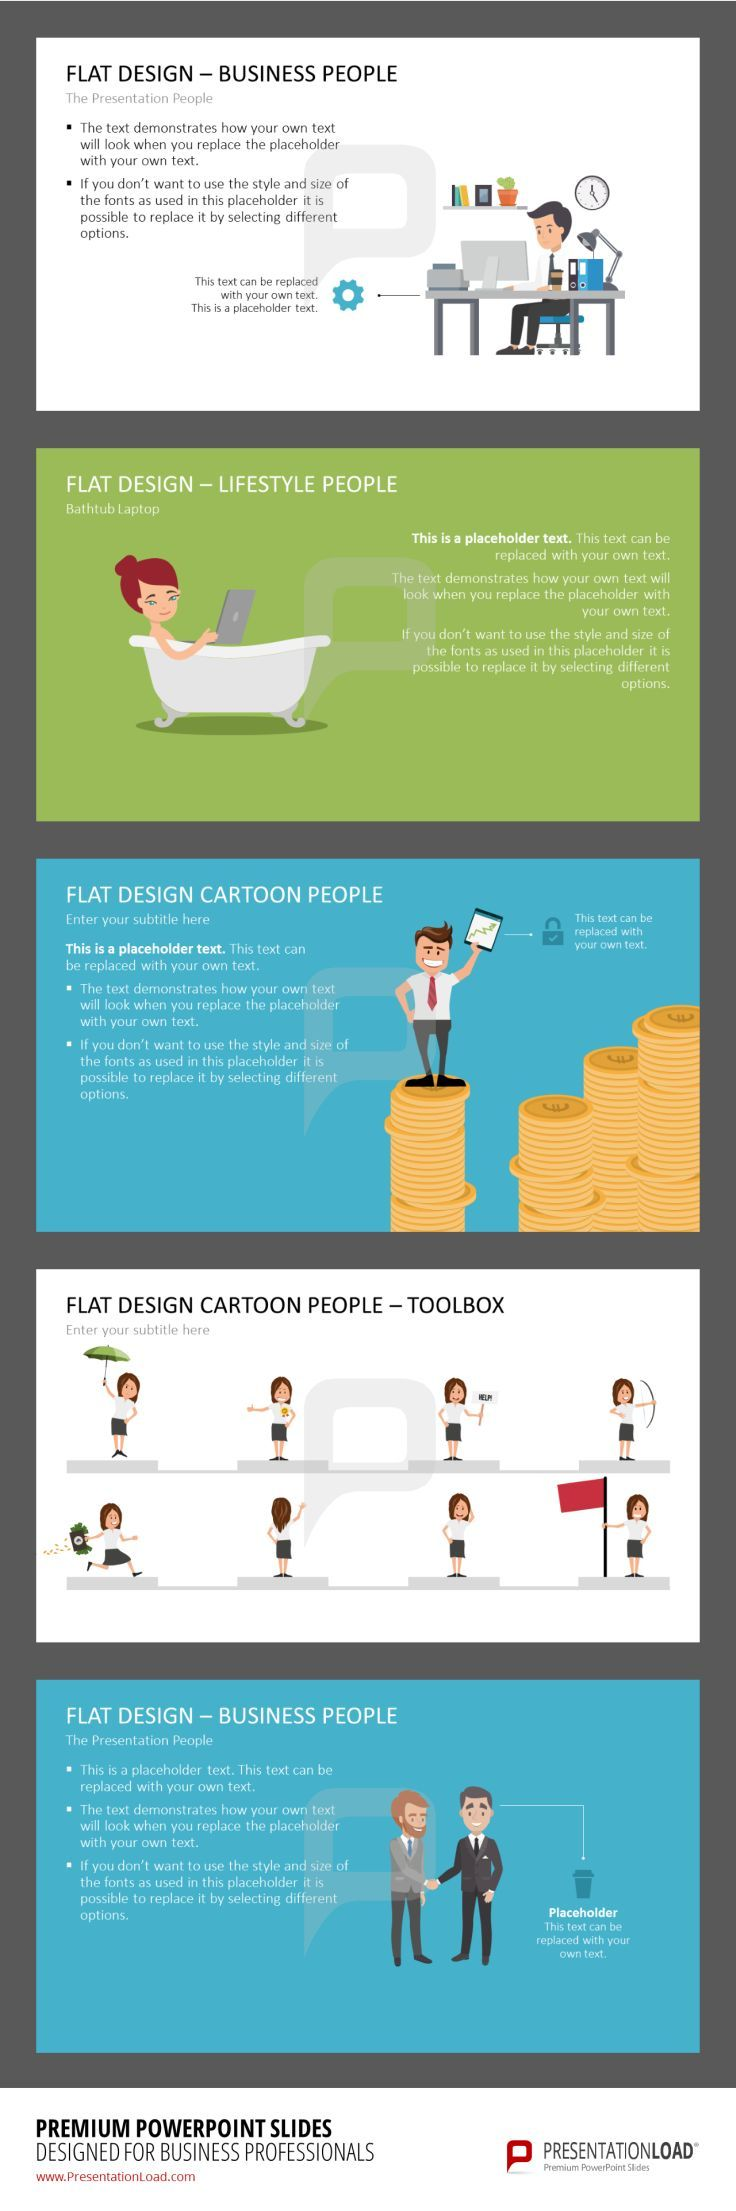 144 best flat design powerpoint templates images on pinterest graphics of cartoon figures in action can depict your content in a memorable way powerpoint design templatesflat alramifo Image collections